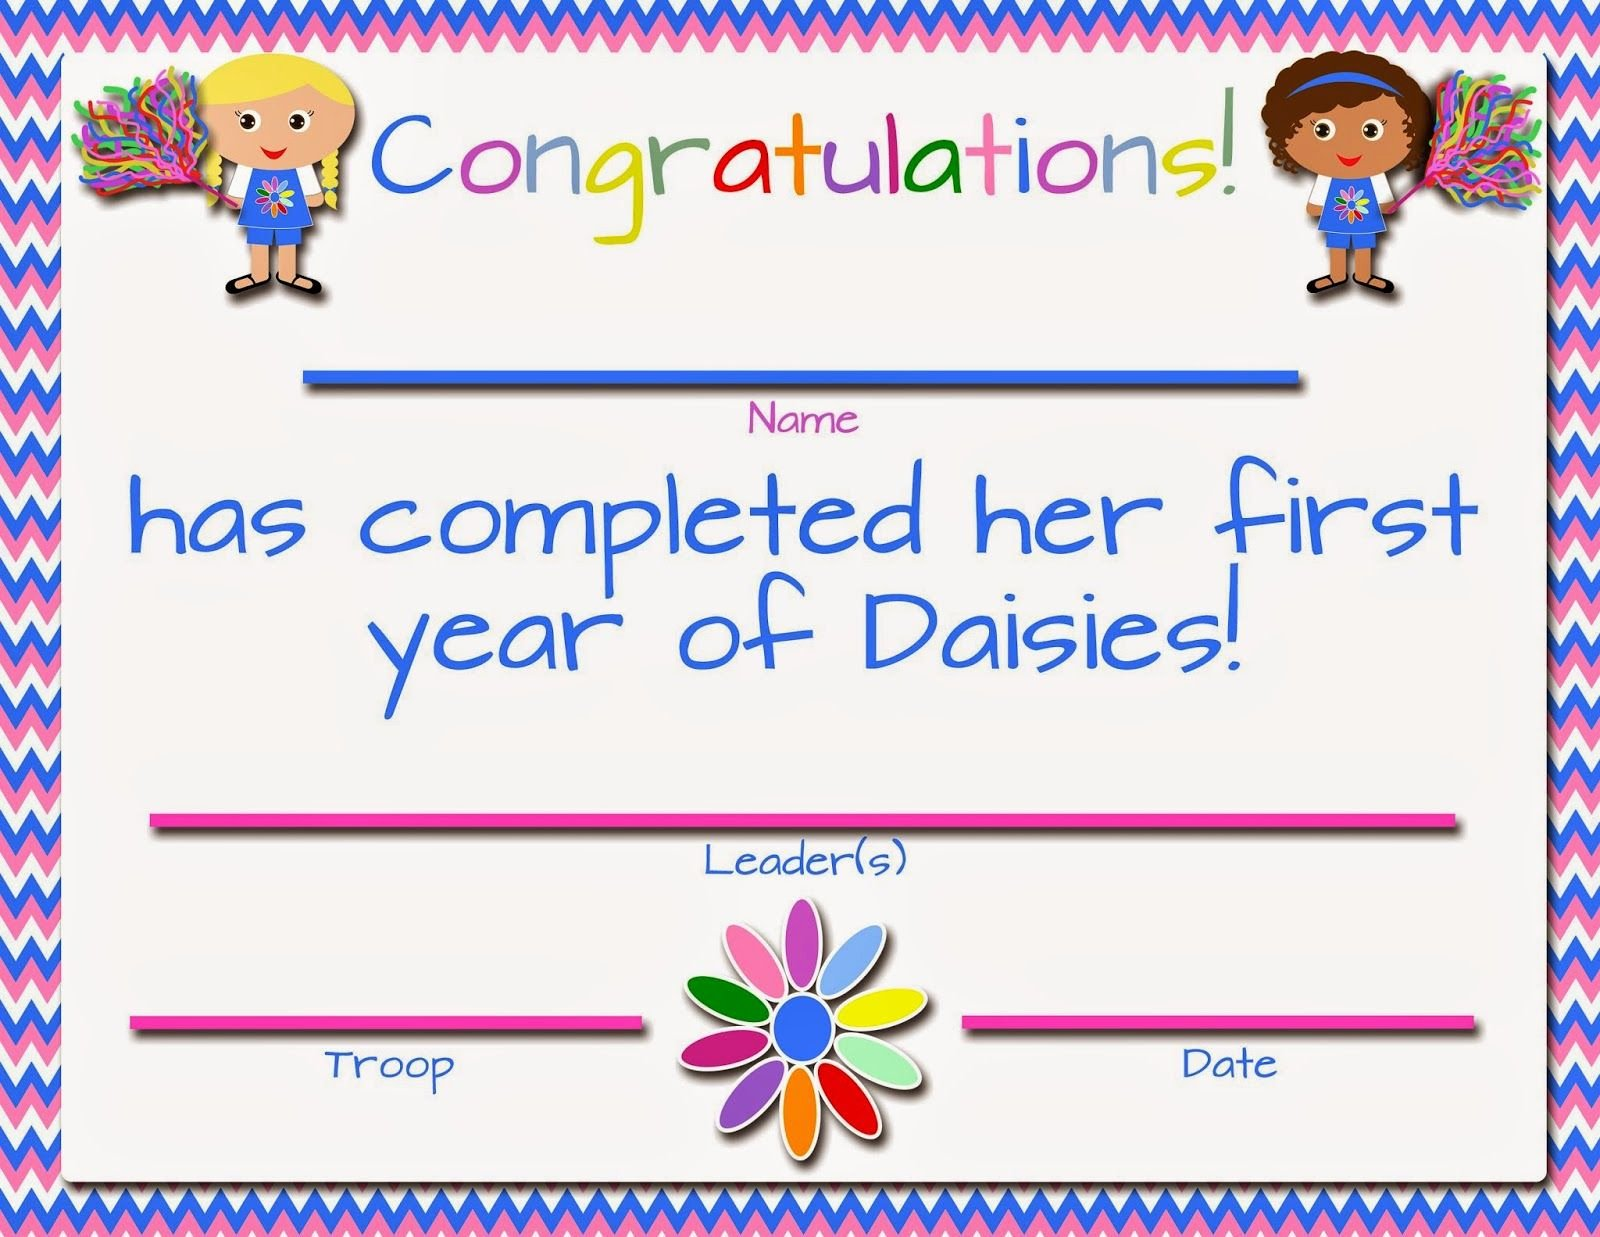 Girl Scout Daisy Certificate Template Inspirational Fashionable Moms Girl Scouts Free Printable First Year